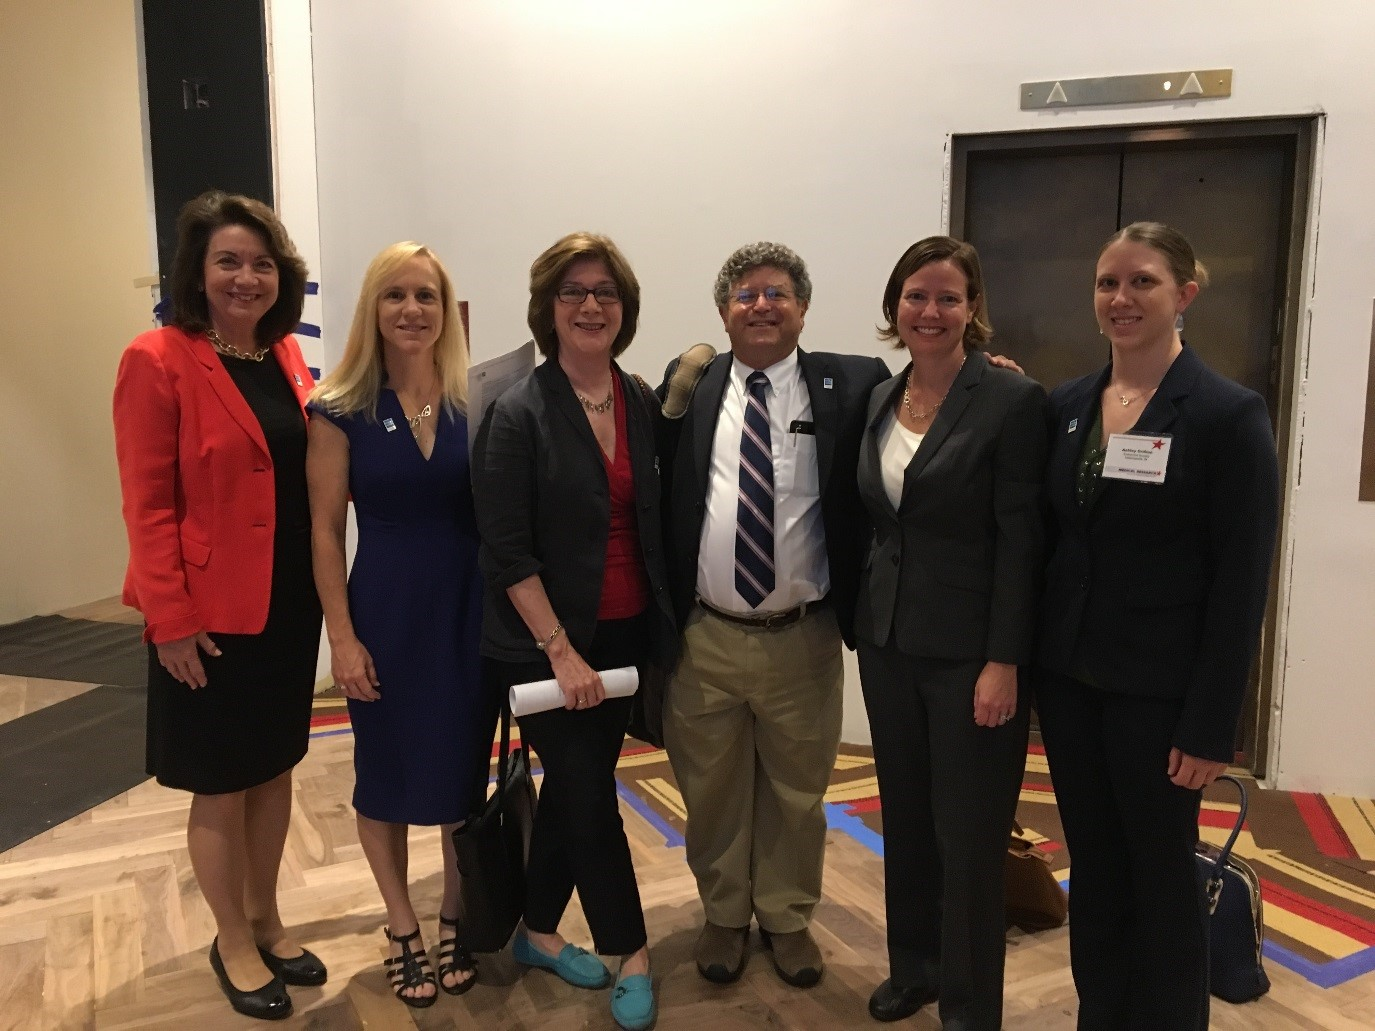 Endocrine Society members Drs. Cynthia Stuenkel, Heather Patisaul, Margaret Eckert-Norton, Daniel Oppenheim, Elizabeth Austen Lawson, and FLARE Fellow Ashley Orillion head to Capitol Hill to support NIH funding.